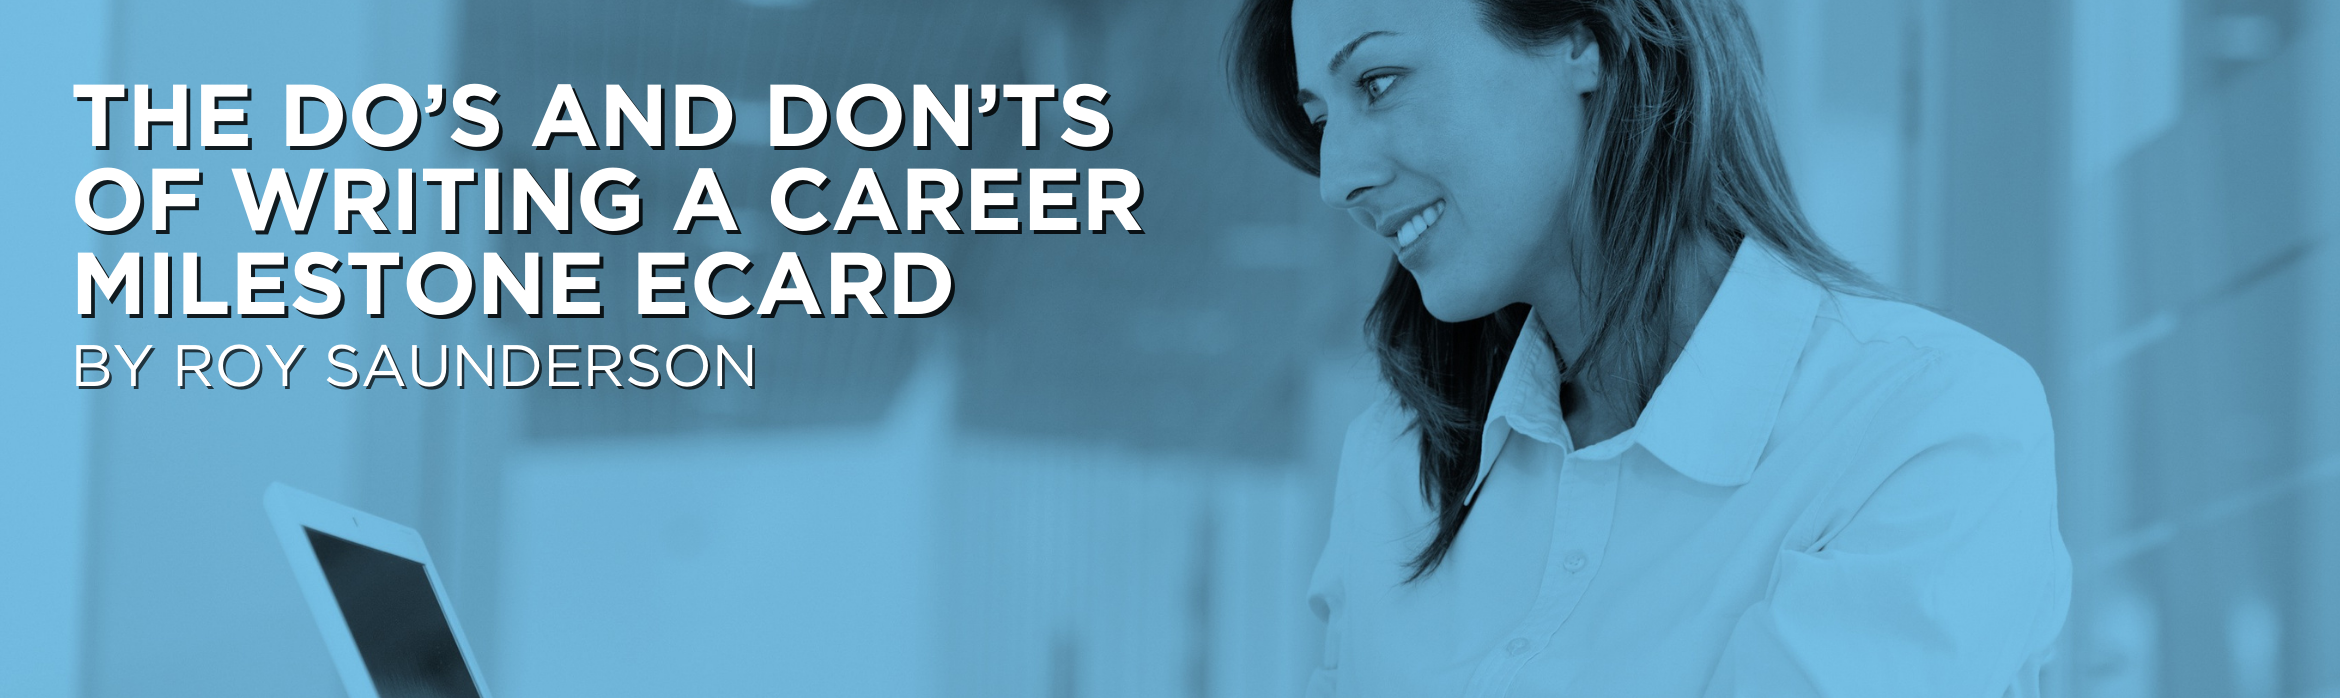 The Do's and Don'ts of Writing a Career Milestone Ecard